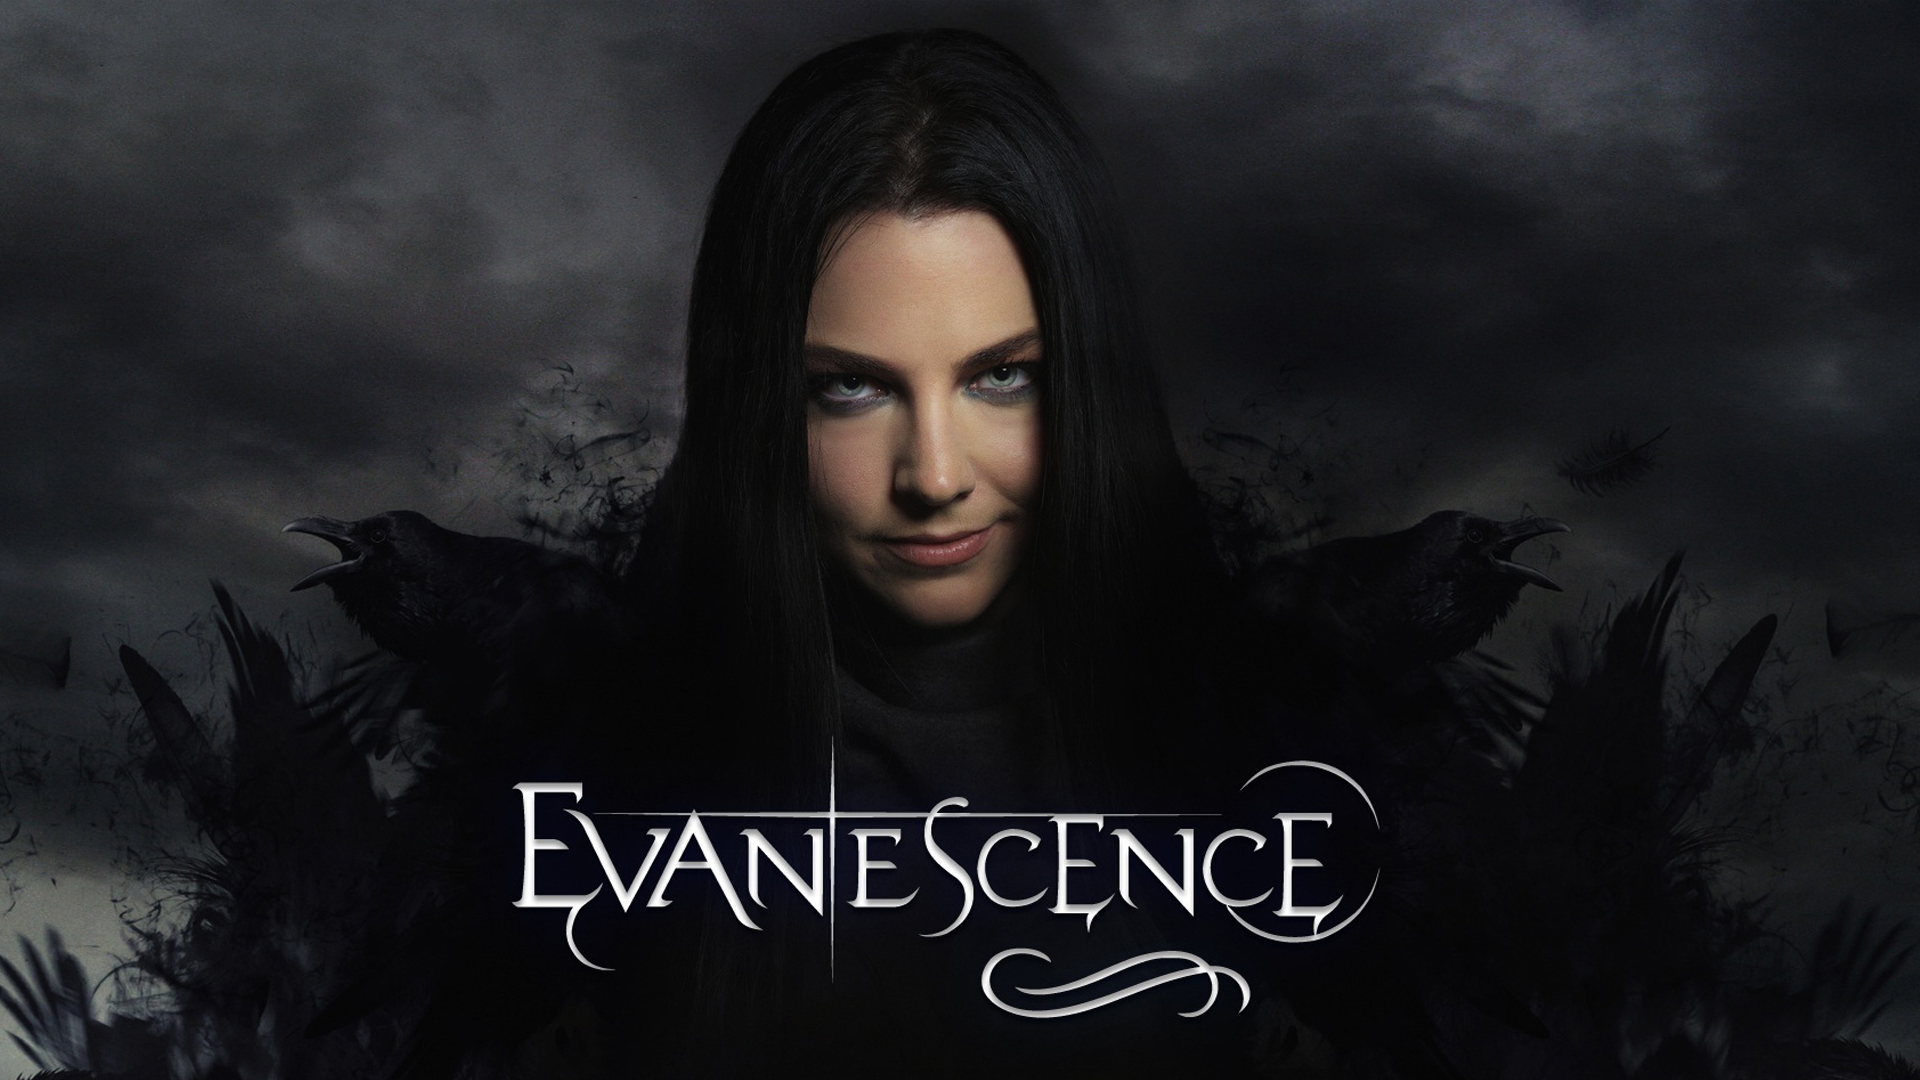 download wallpaper 1920x1080 evanescence - photo #1